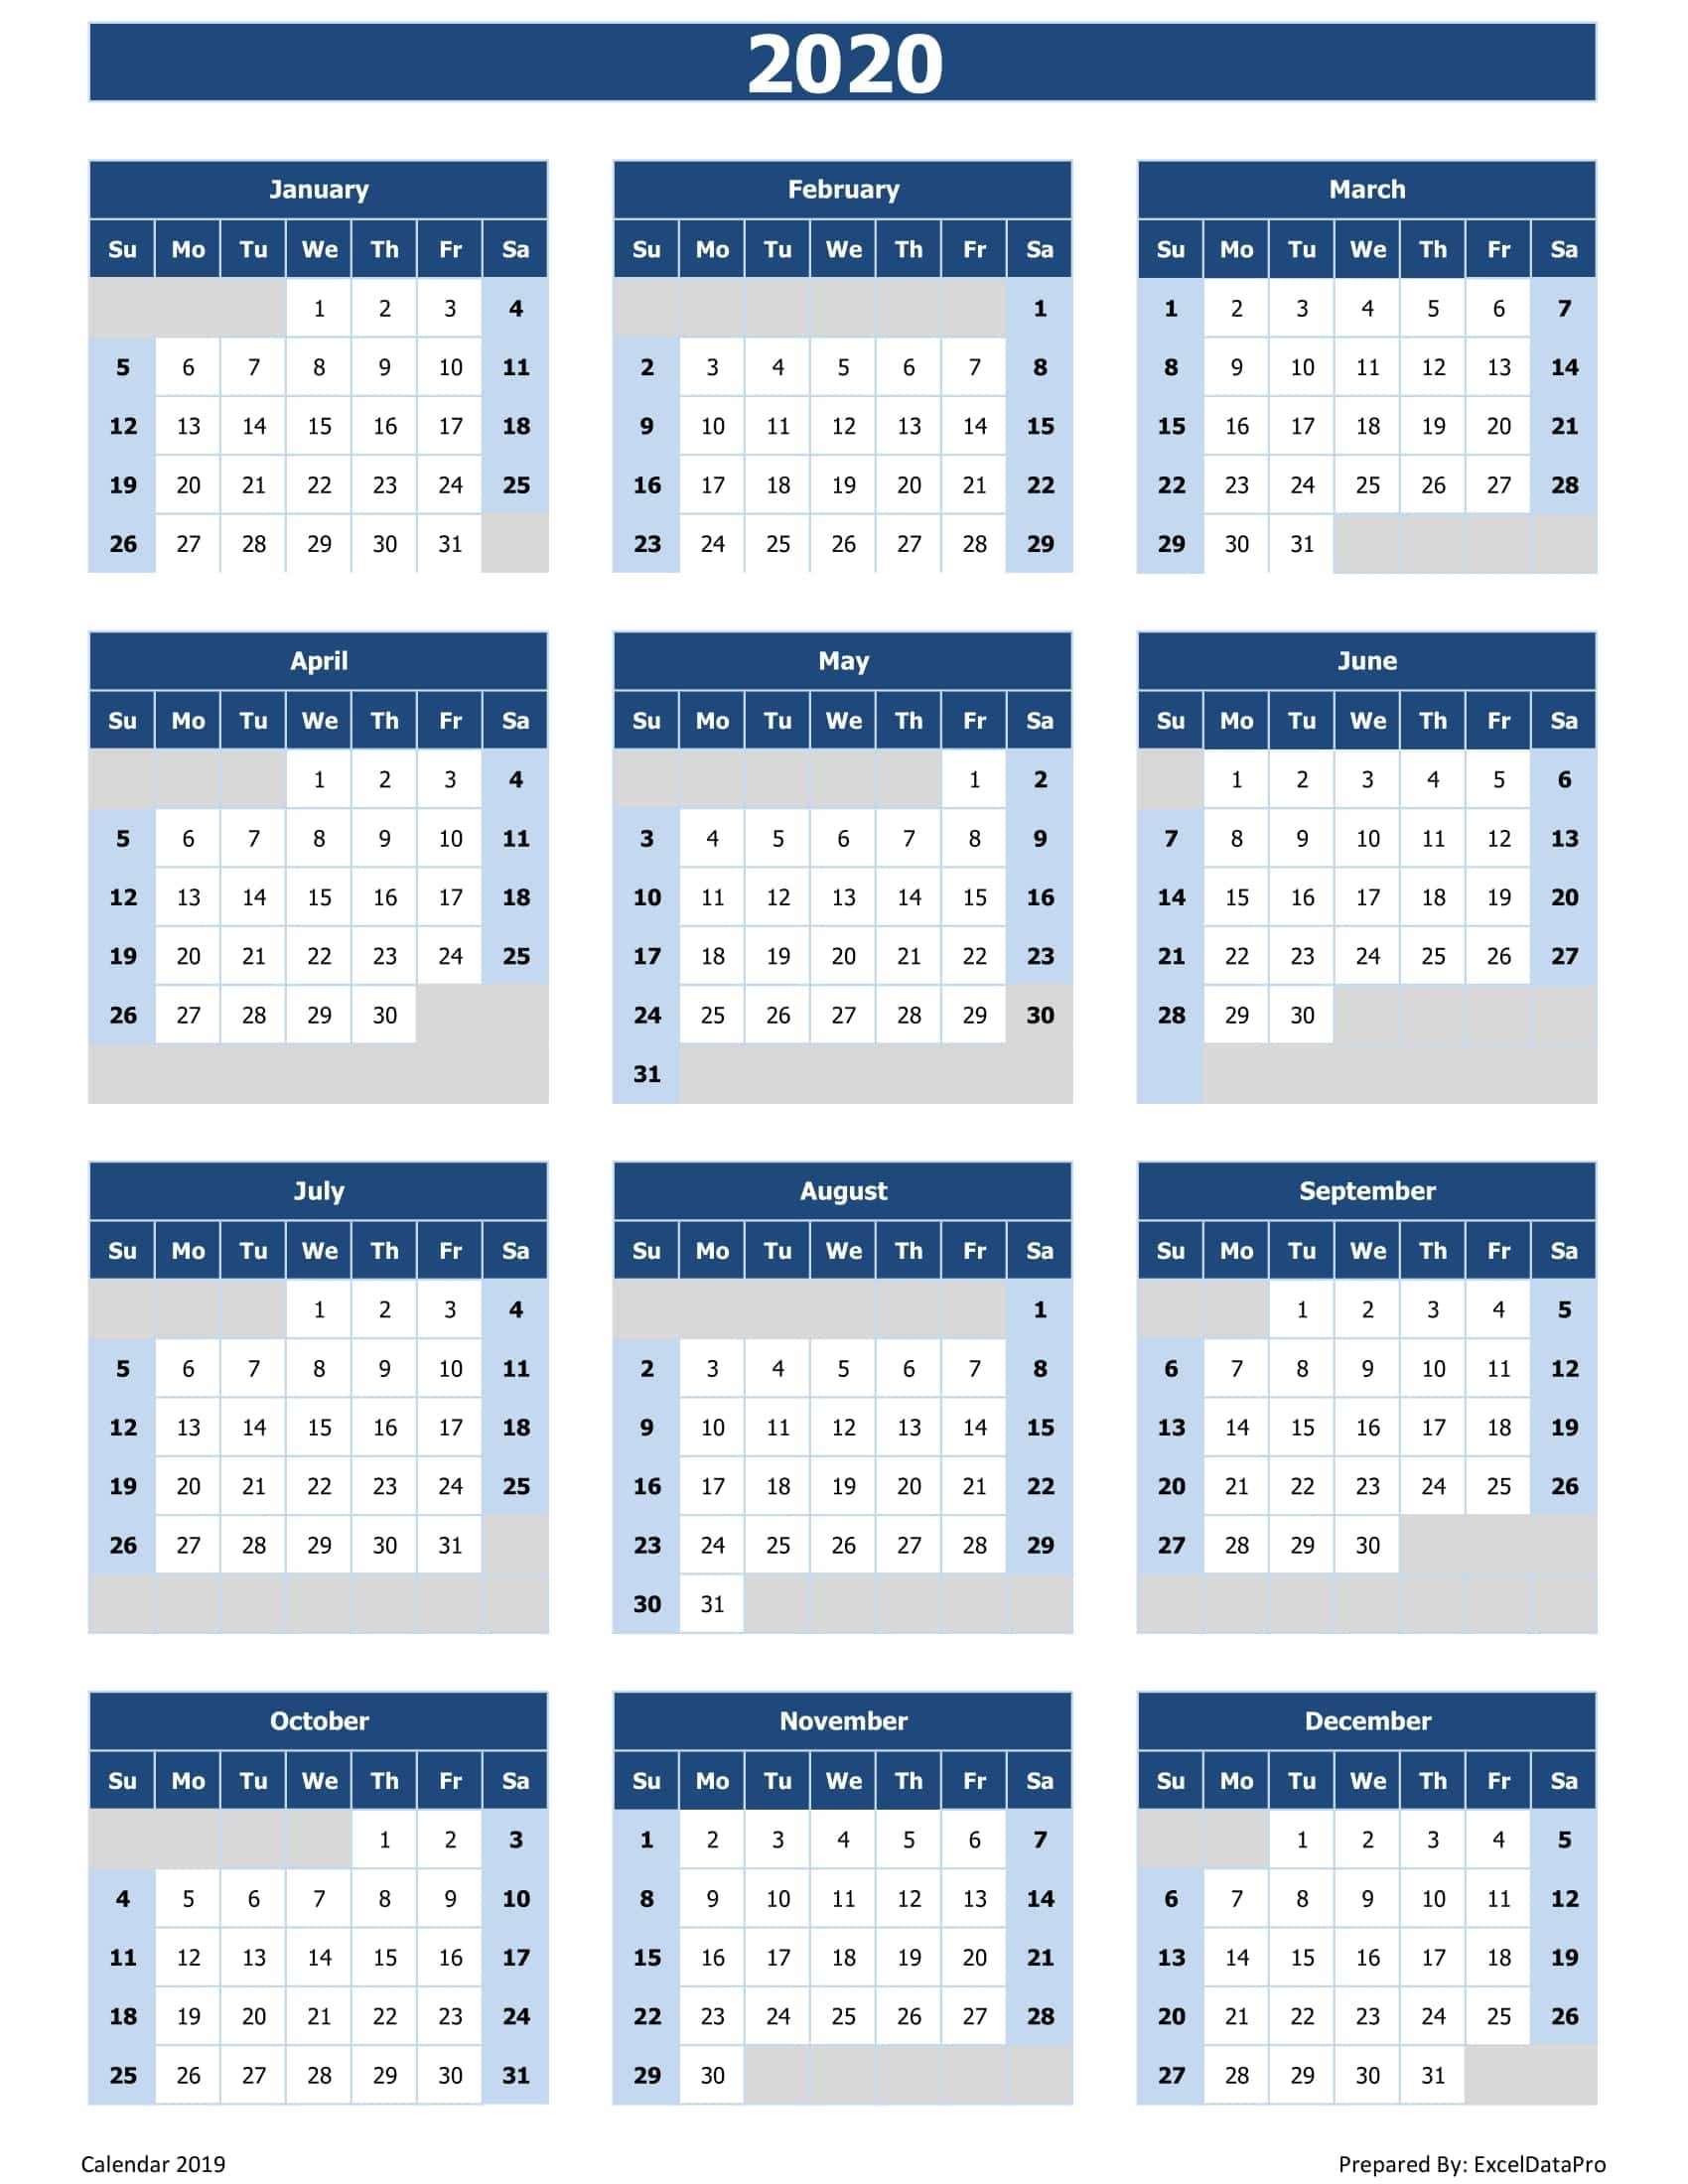 2020 Calendar Excel Templates, Printable Pdfs & Images with 2020 Fiscal Calendar To Print